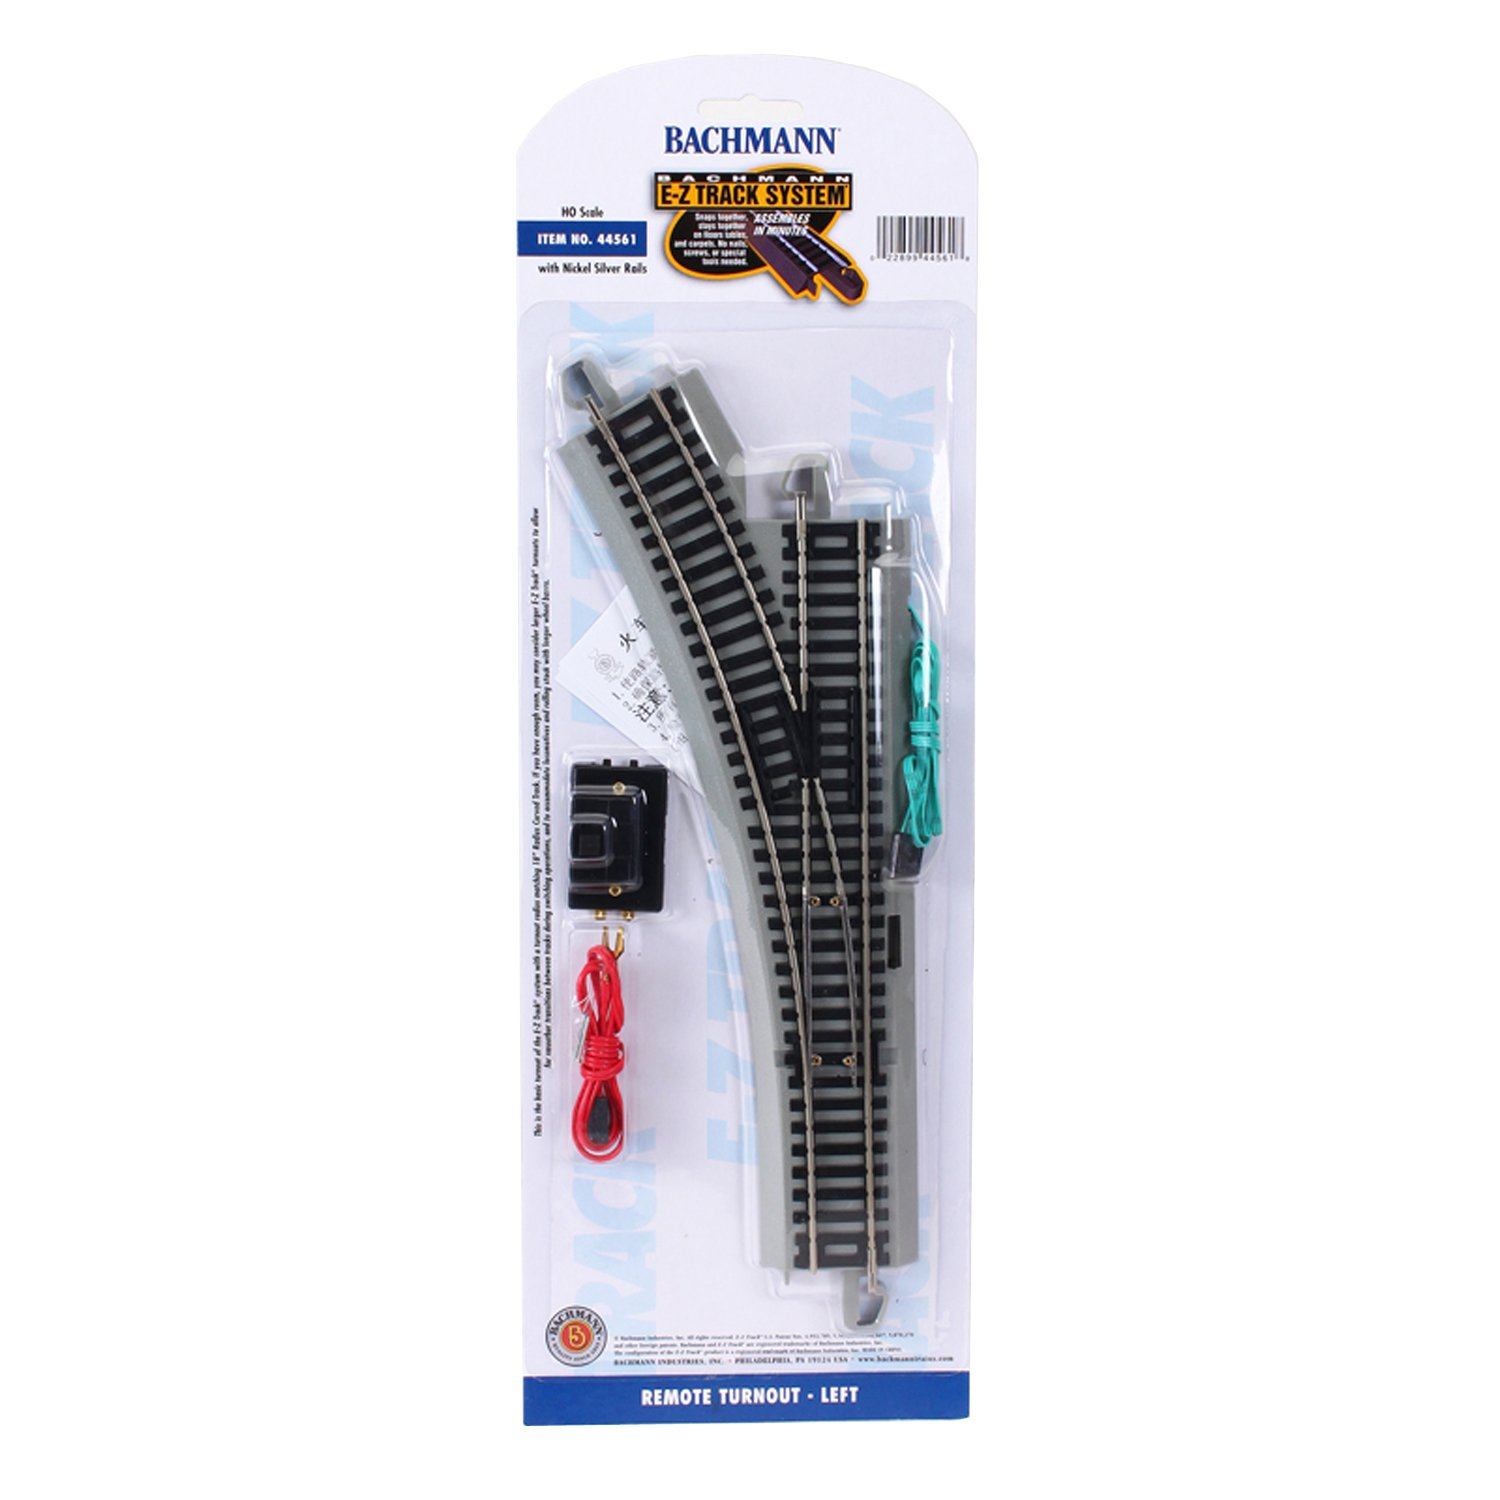 HO Scale Bachmann Trains Snap Fit E Z Track Remote Turnout Left